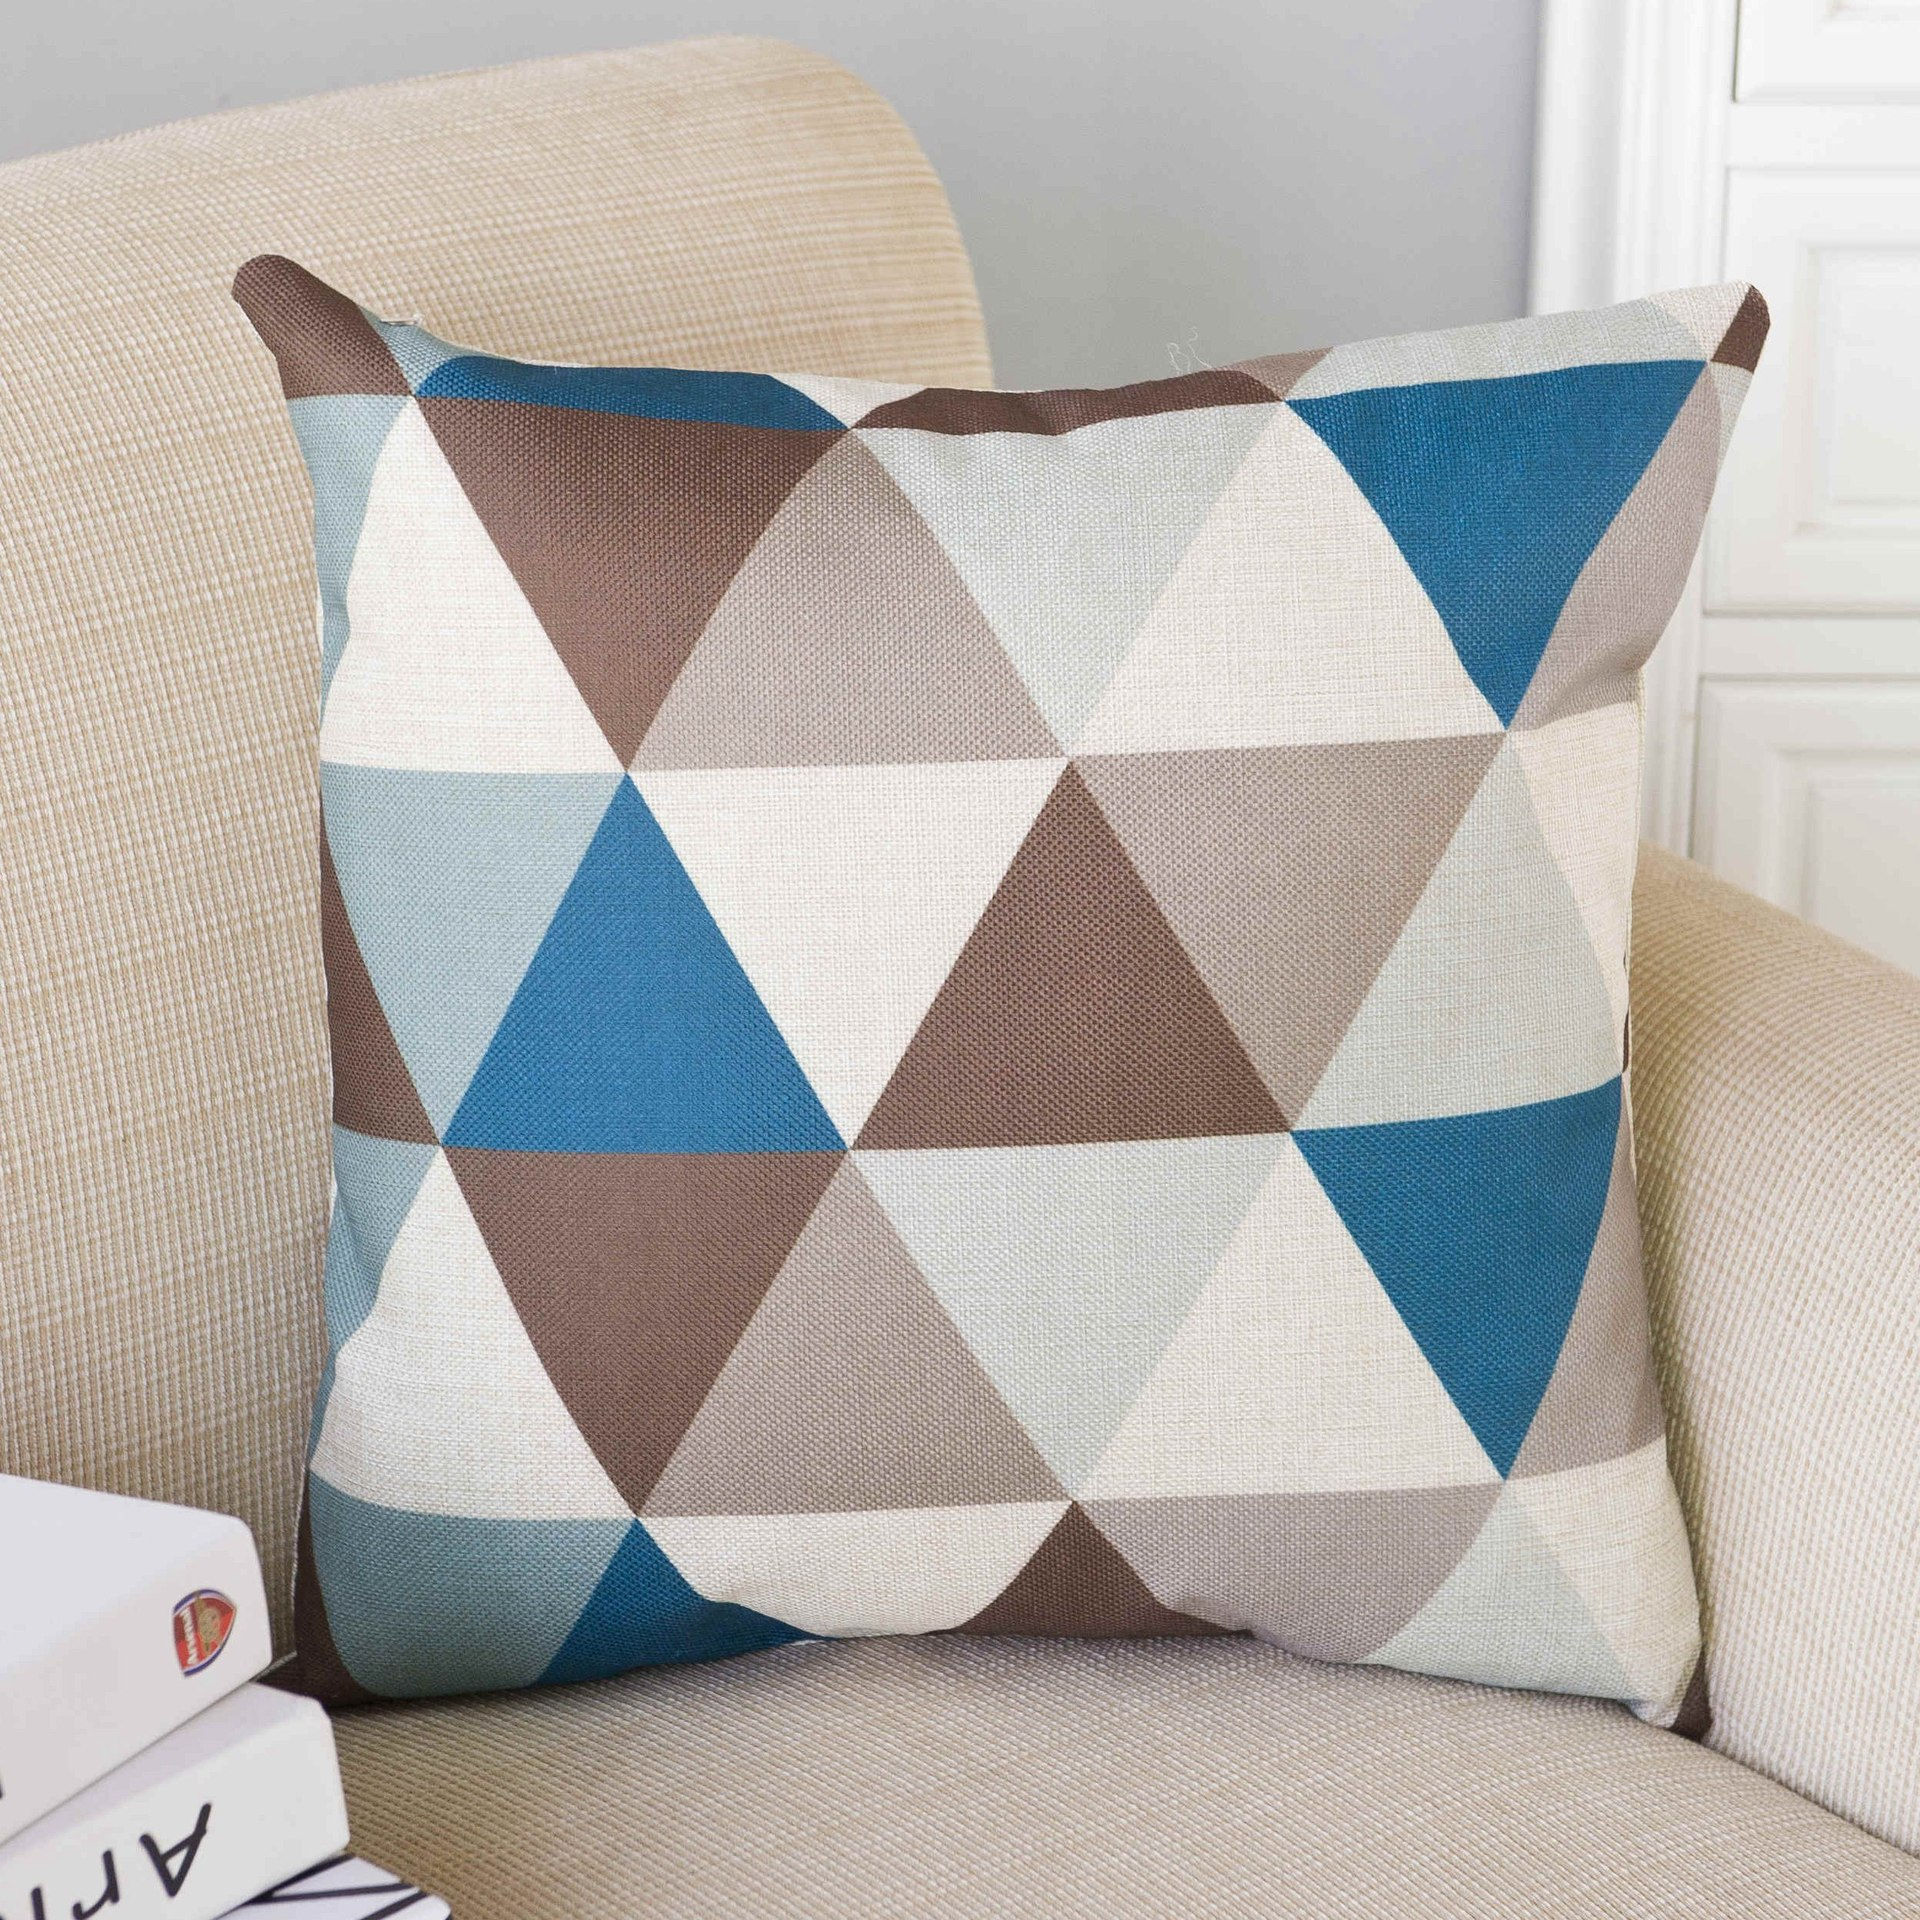 Colourful Geometry Printed Cotton Linen Pillowcase Decorative Pillows Cushion Use for Home Sofa Car Office Back Cushion Cover